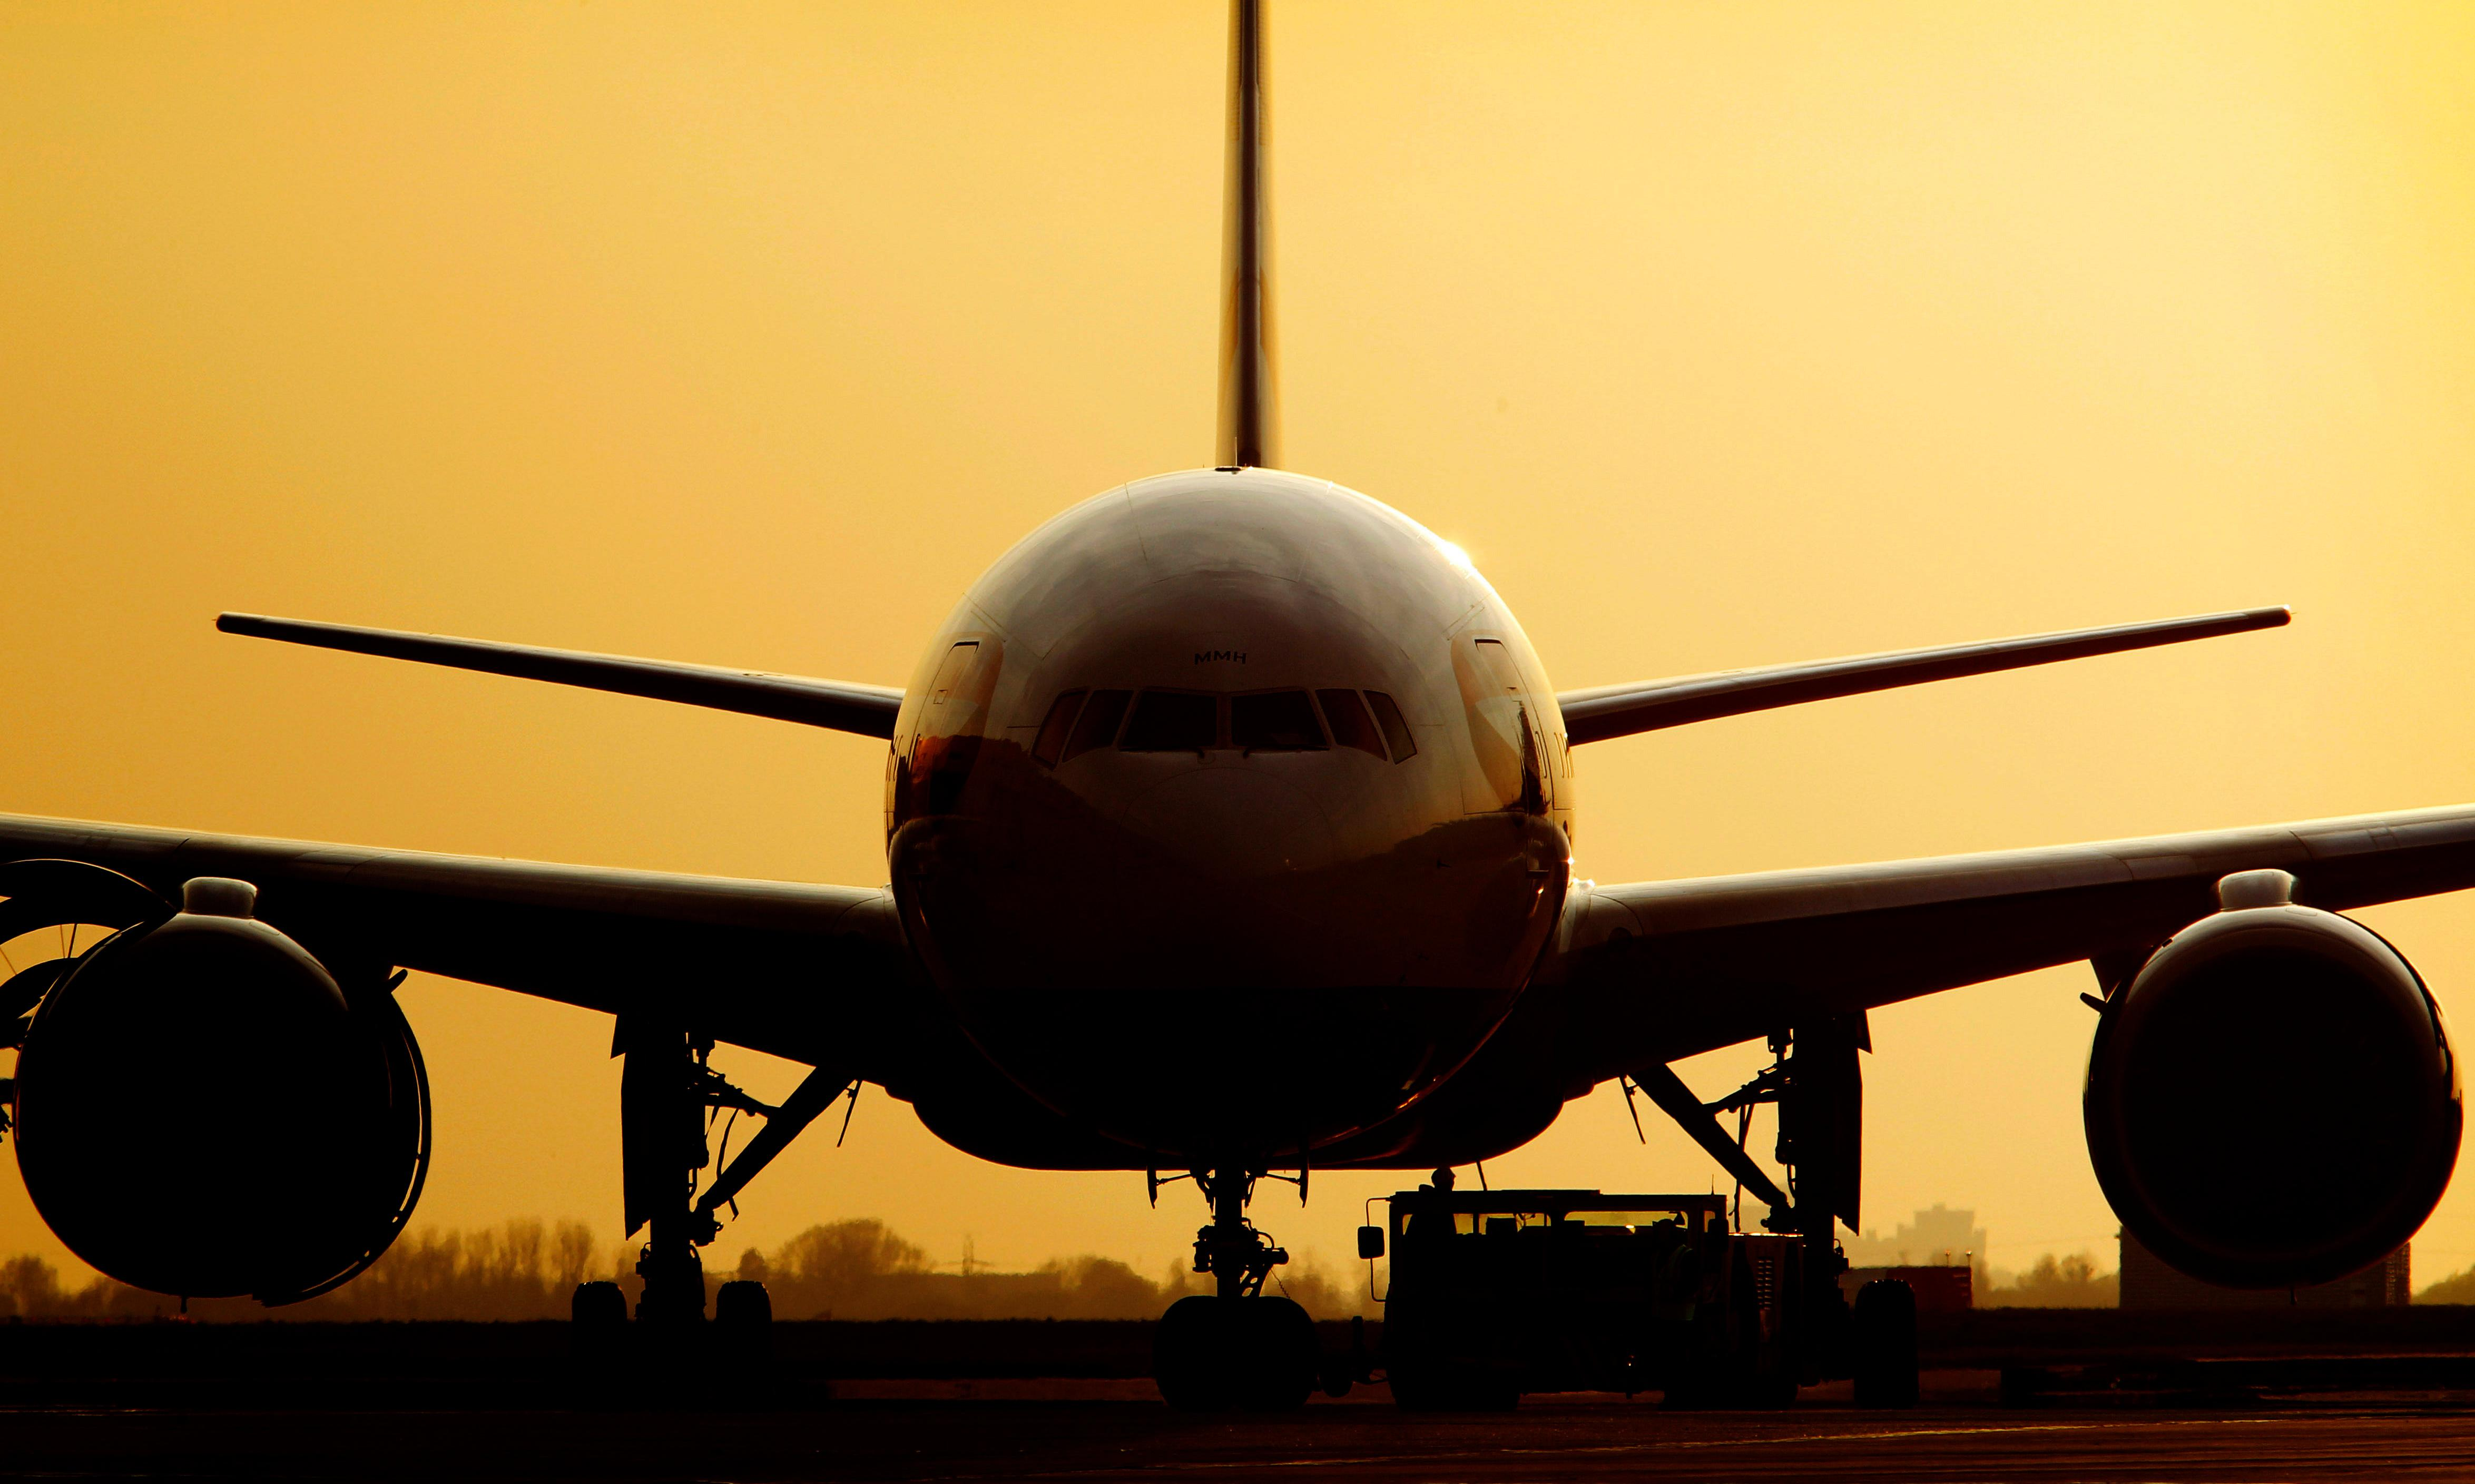 BA's early dive into carbon offsetting gives it an edge in the climate PR battle